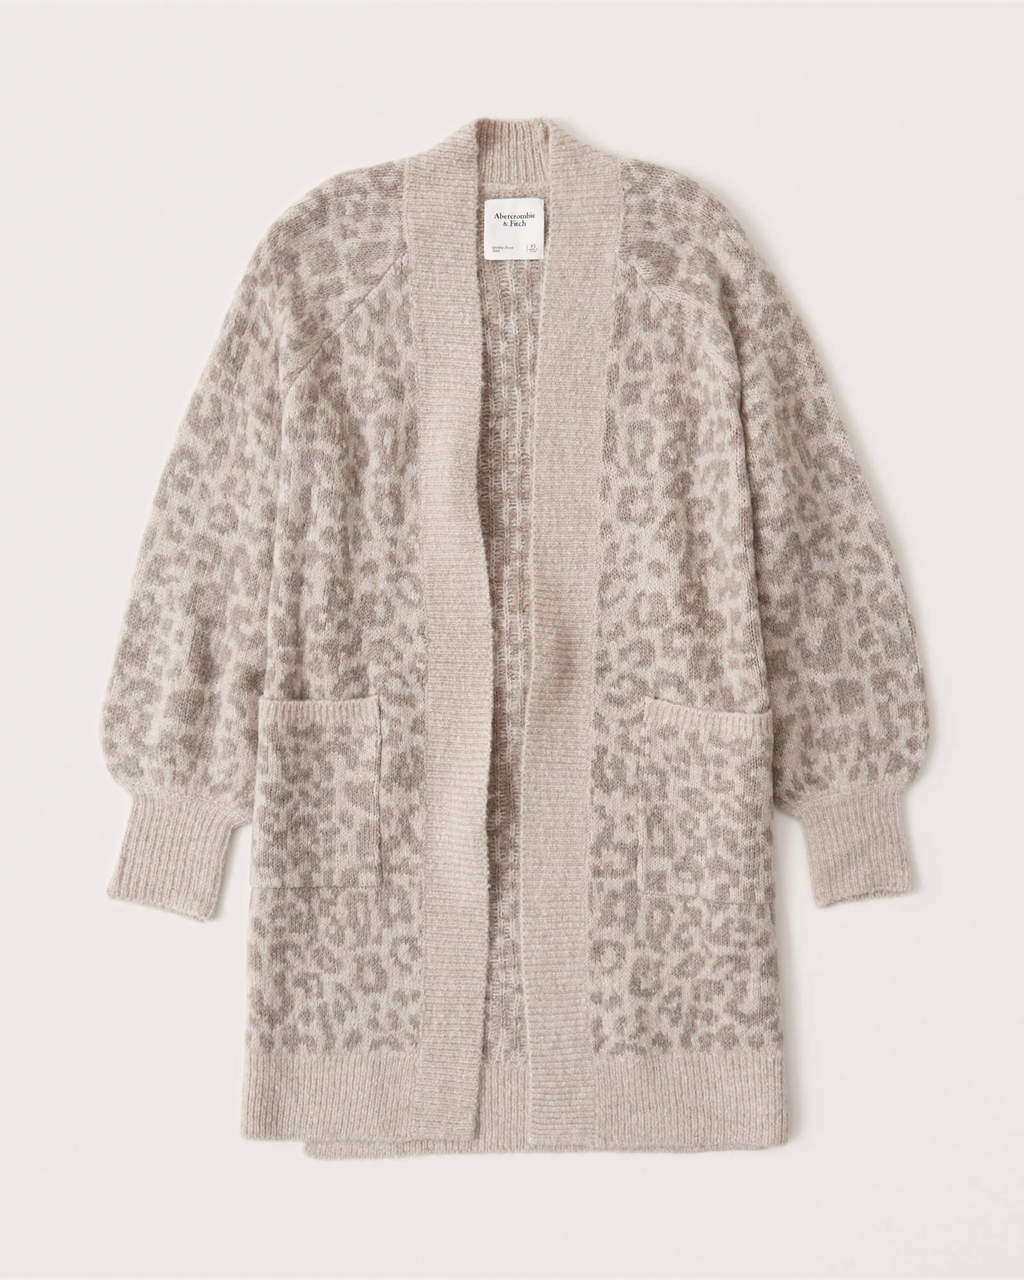 Abercrombie & Fitch Leopard Duster Cardigan